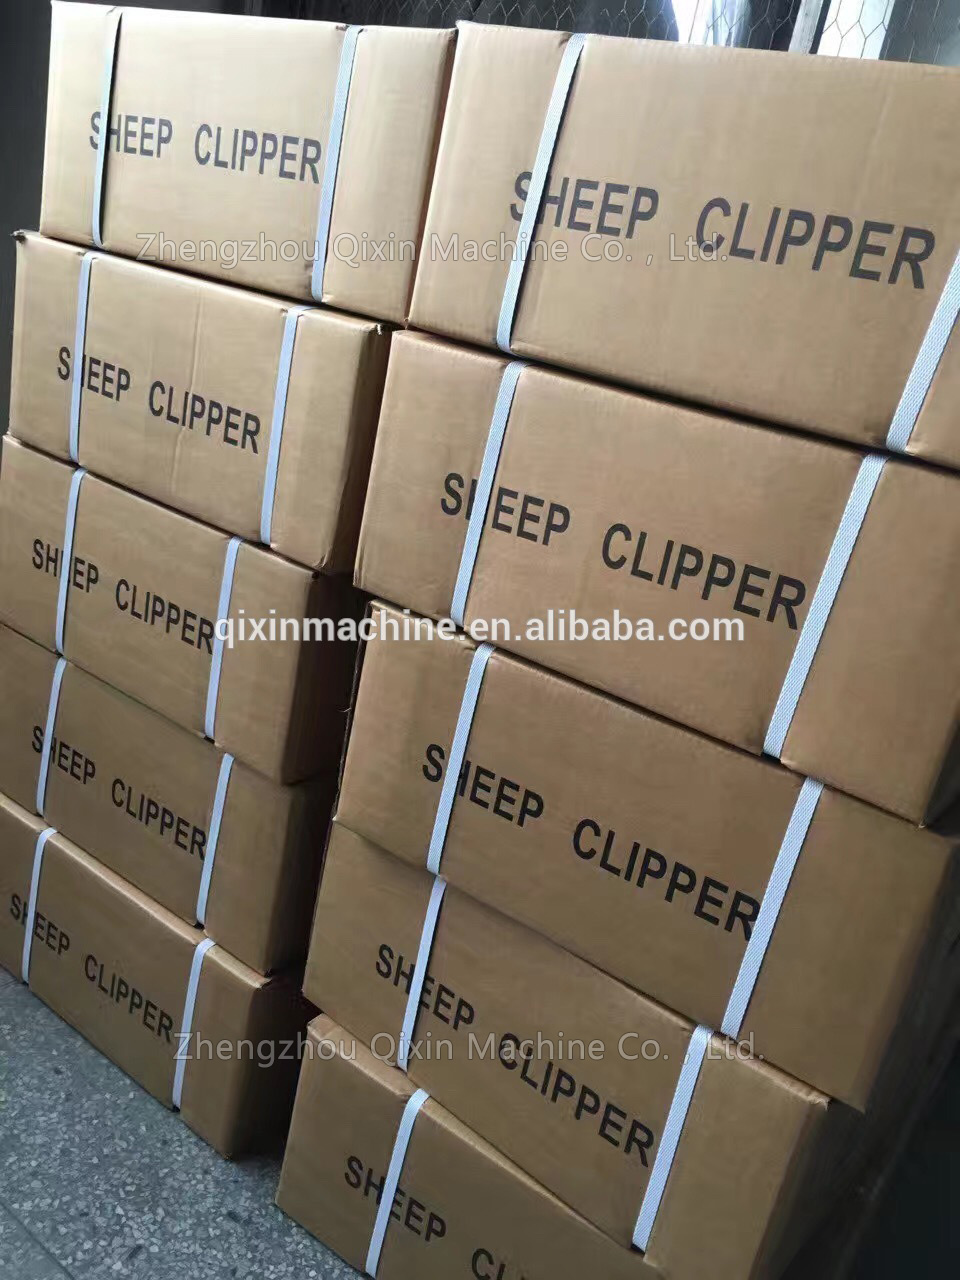 China factory hot sale electric sheep wool clipper/scissors to shear sheep